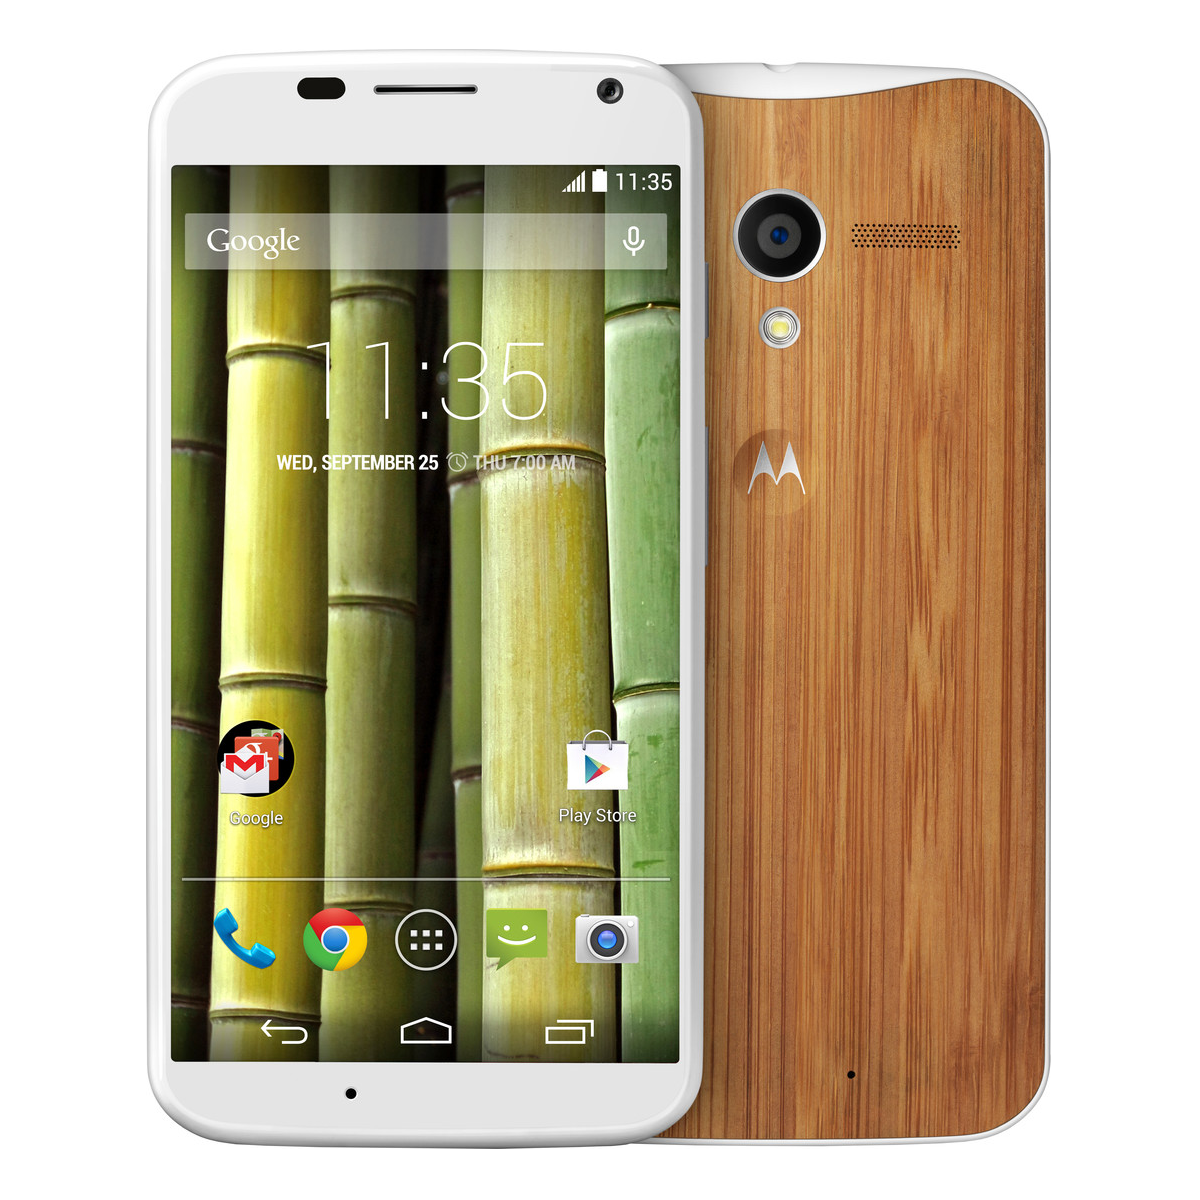 Motorola Moto X XT1060 16GB 4G LTE Android Smart Phone Verizon White Bamboo